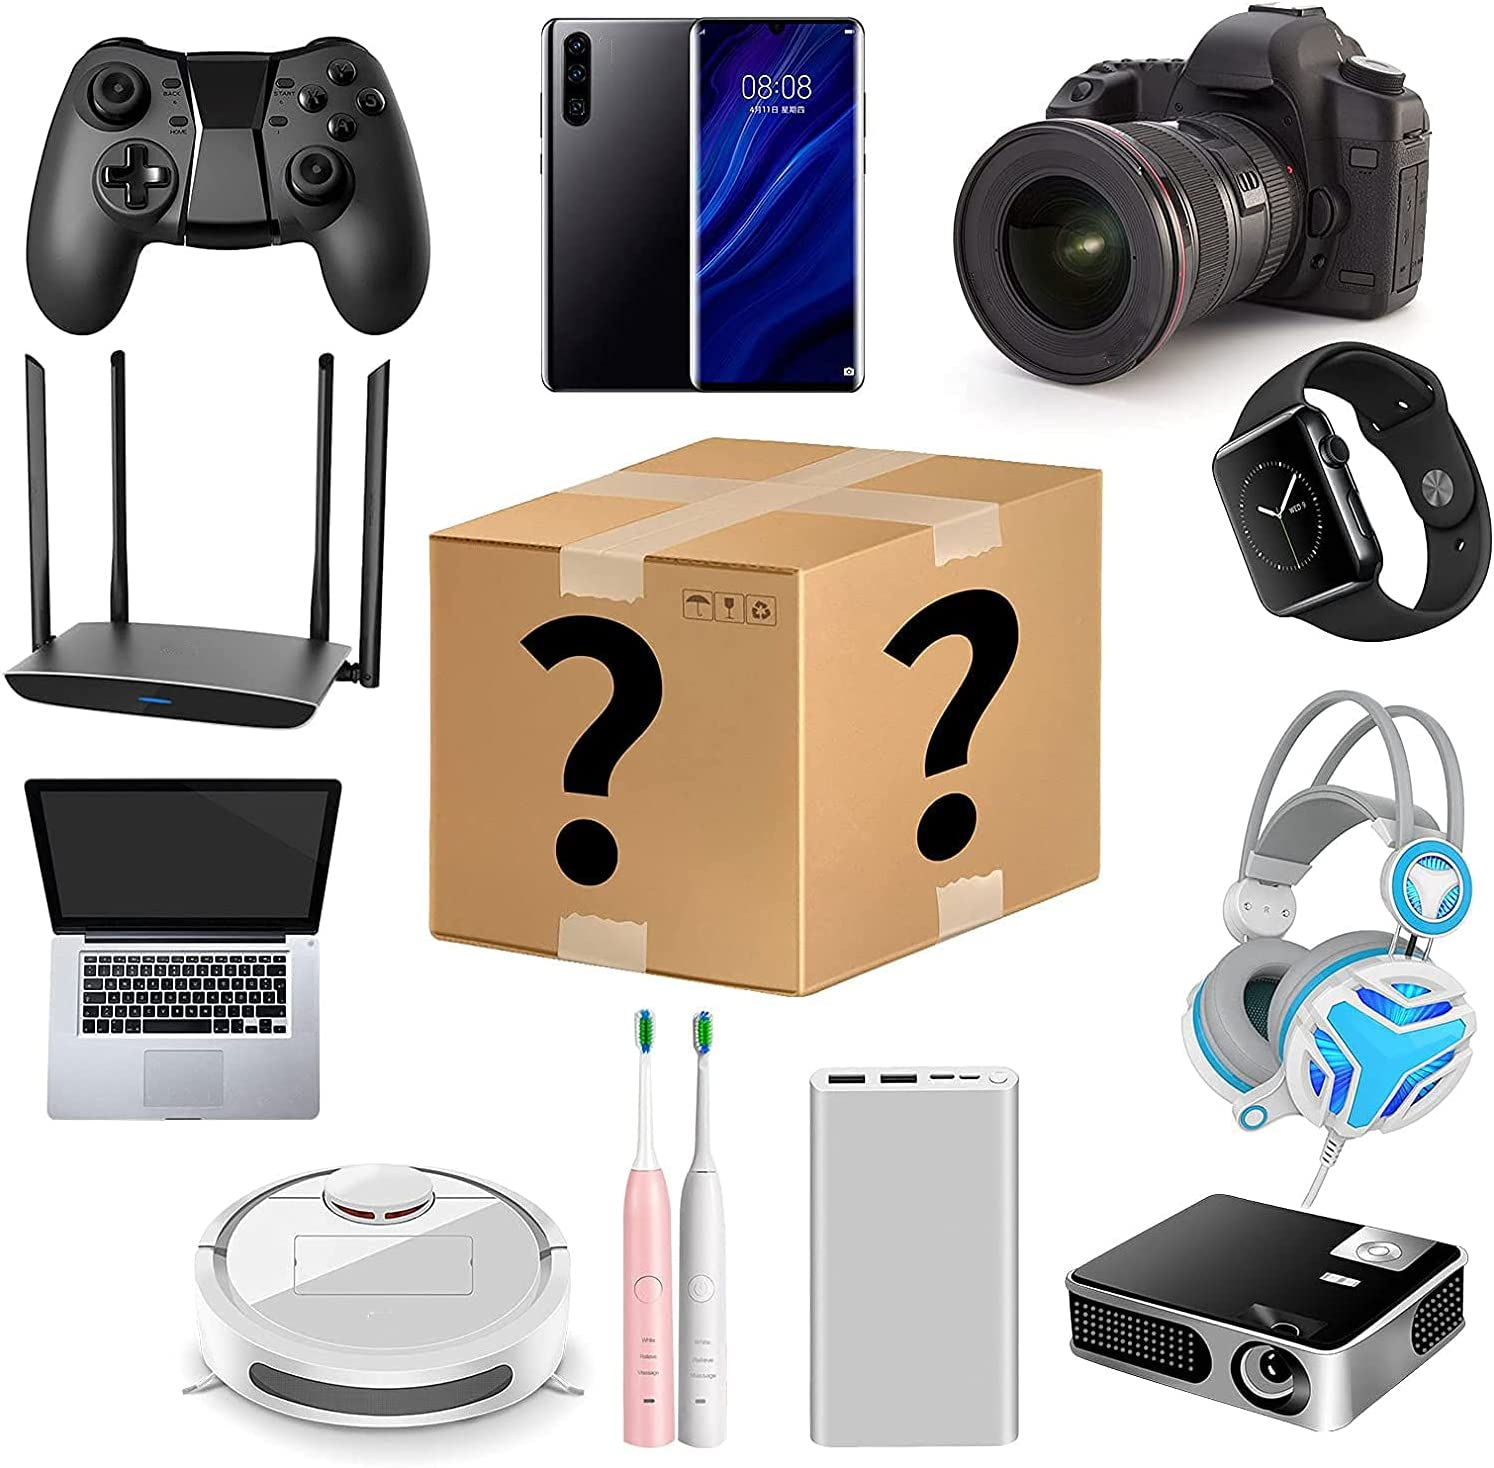 Luckys Max 59% OFF Boxs Boxses Mysterious Random Trust There A Products is